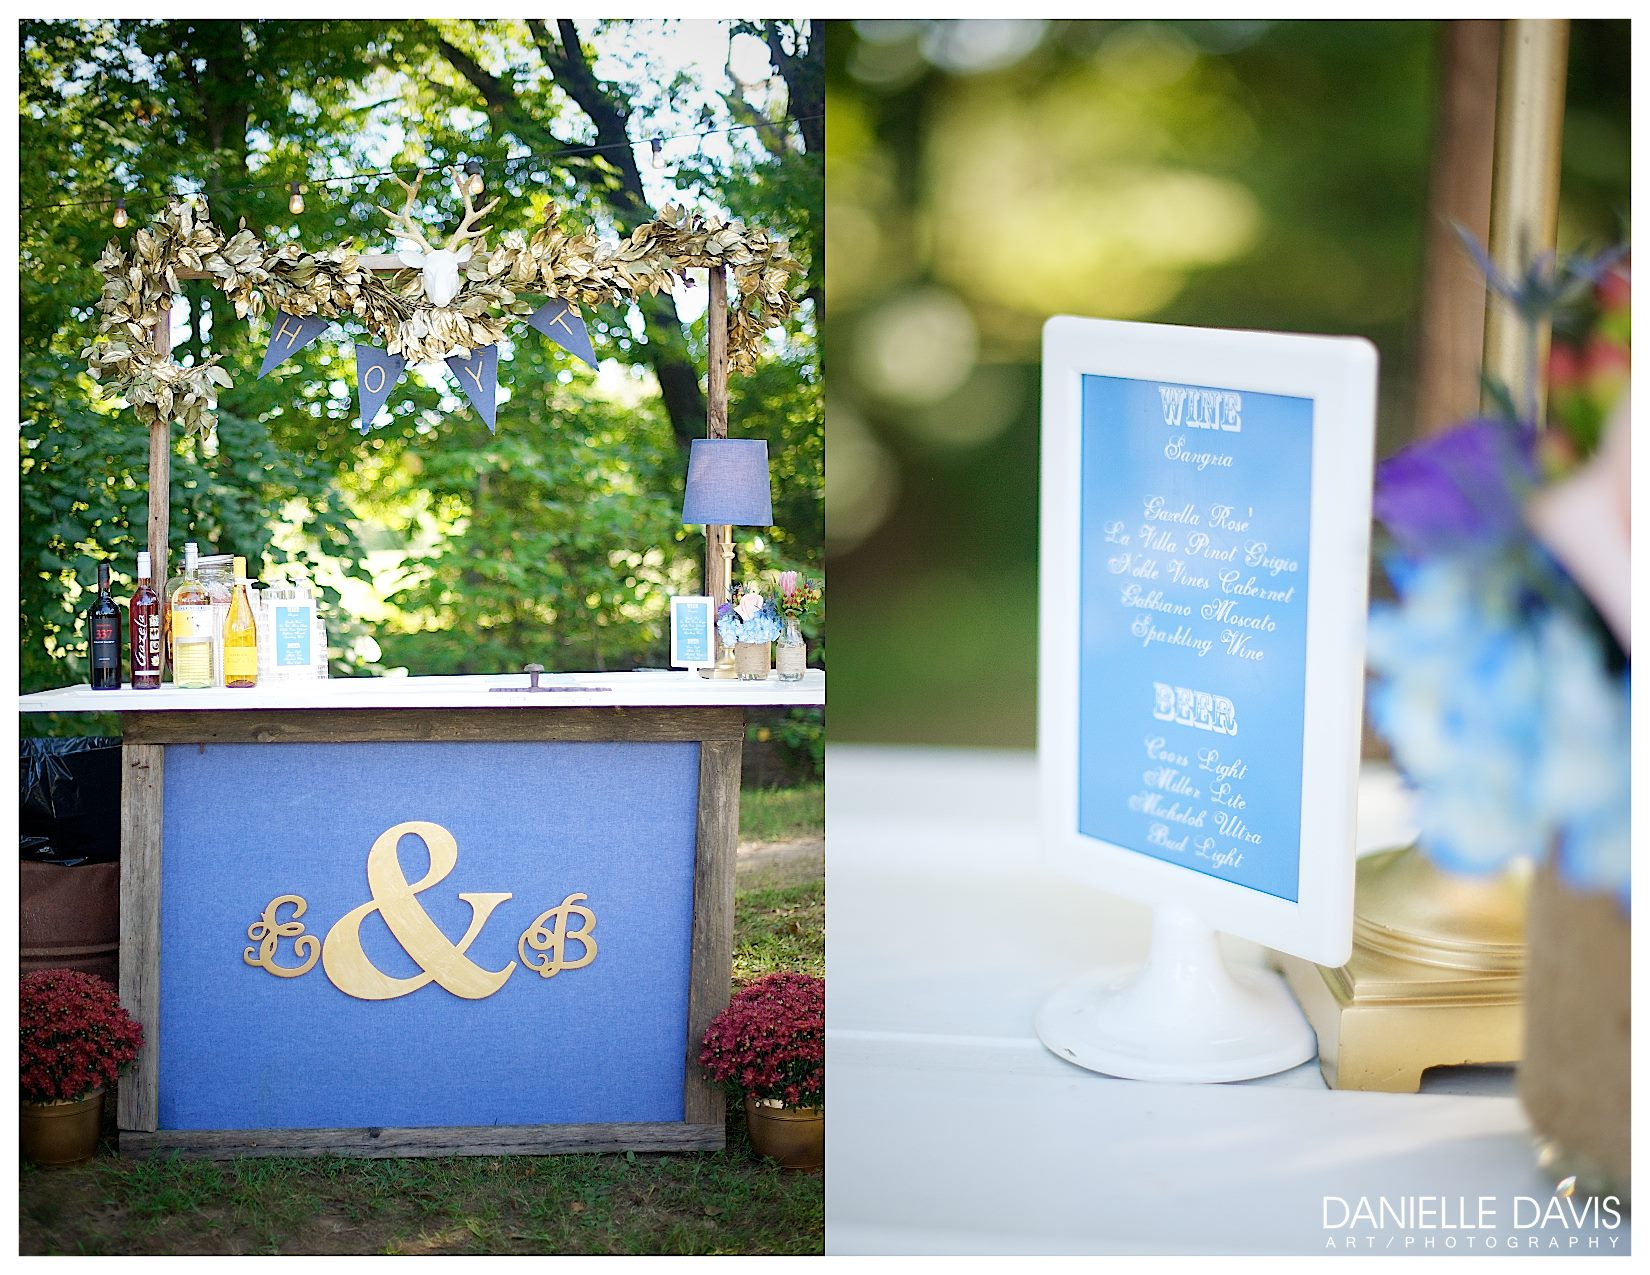 Danielle Davis Art/Photography , from  Emily + Blake 's wedding at The Barn